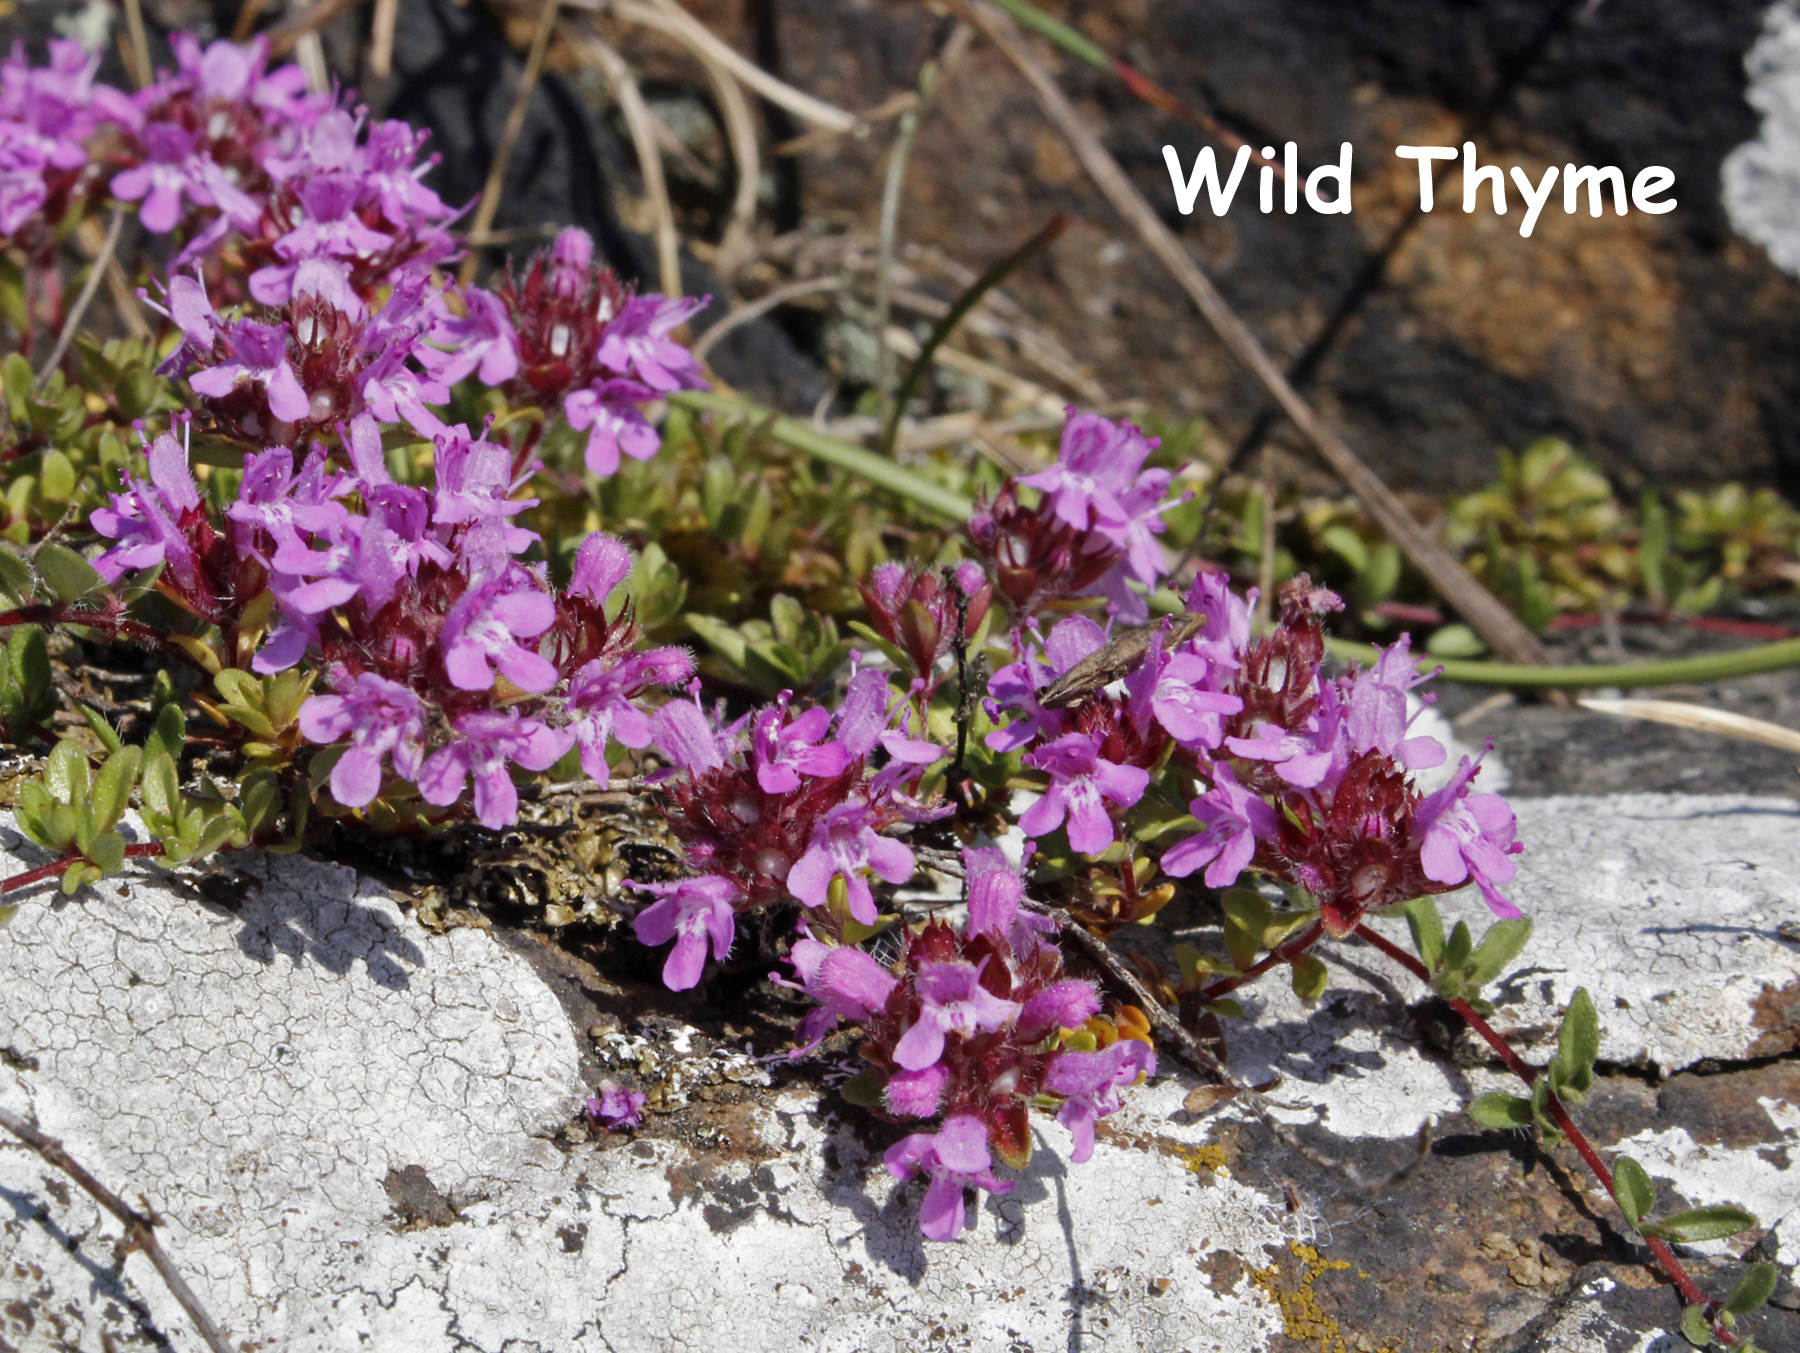 Wild Thyme DP 26Jun14 text